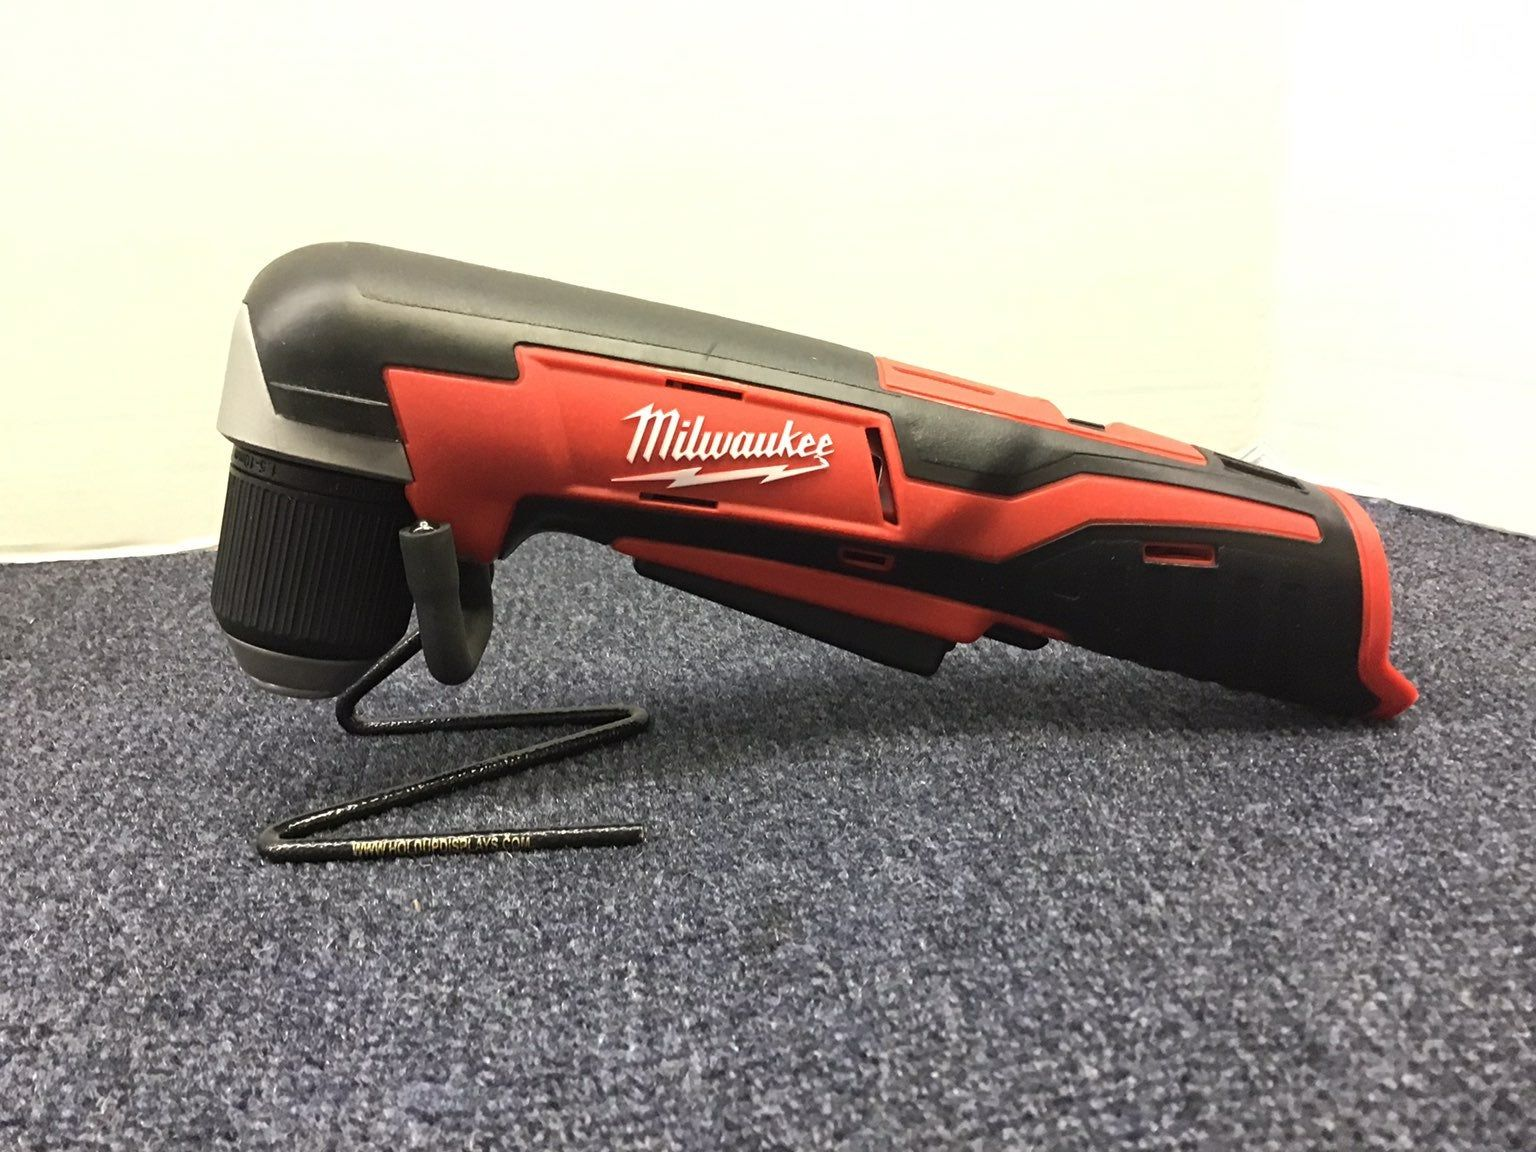 New Never Used Milwaukee 3 8 Right Angle Drill Model 2415 20 Tool Only Angle Drill Milwaukee Tools Drill